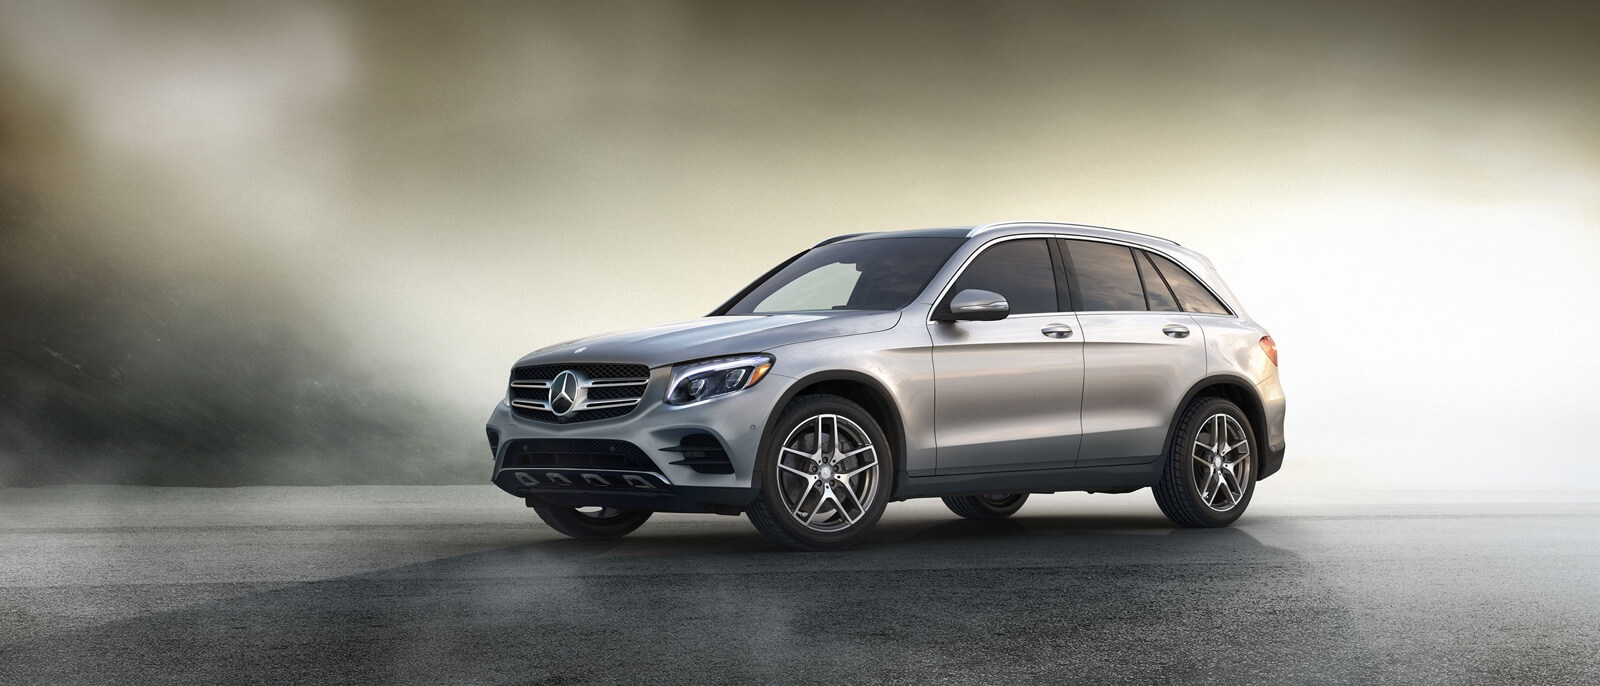 2017 Mercedes-Benz GLC side view light exterior model